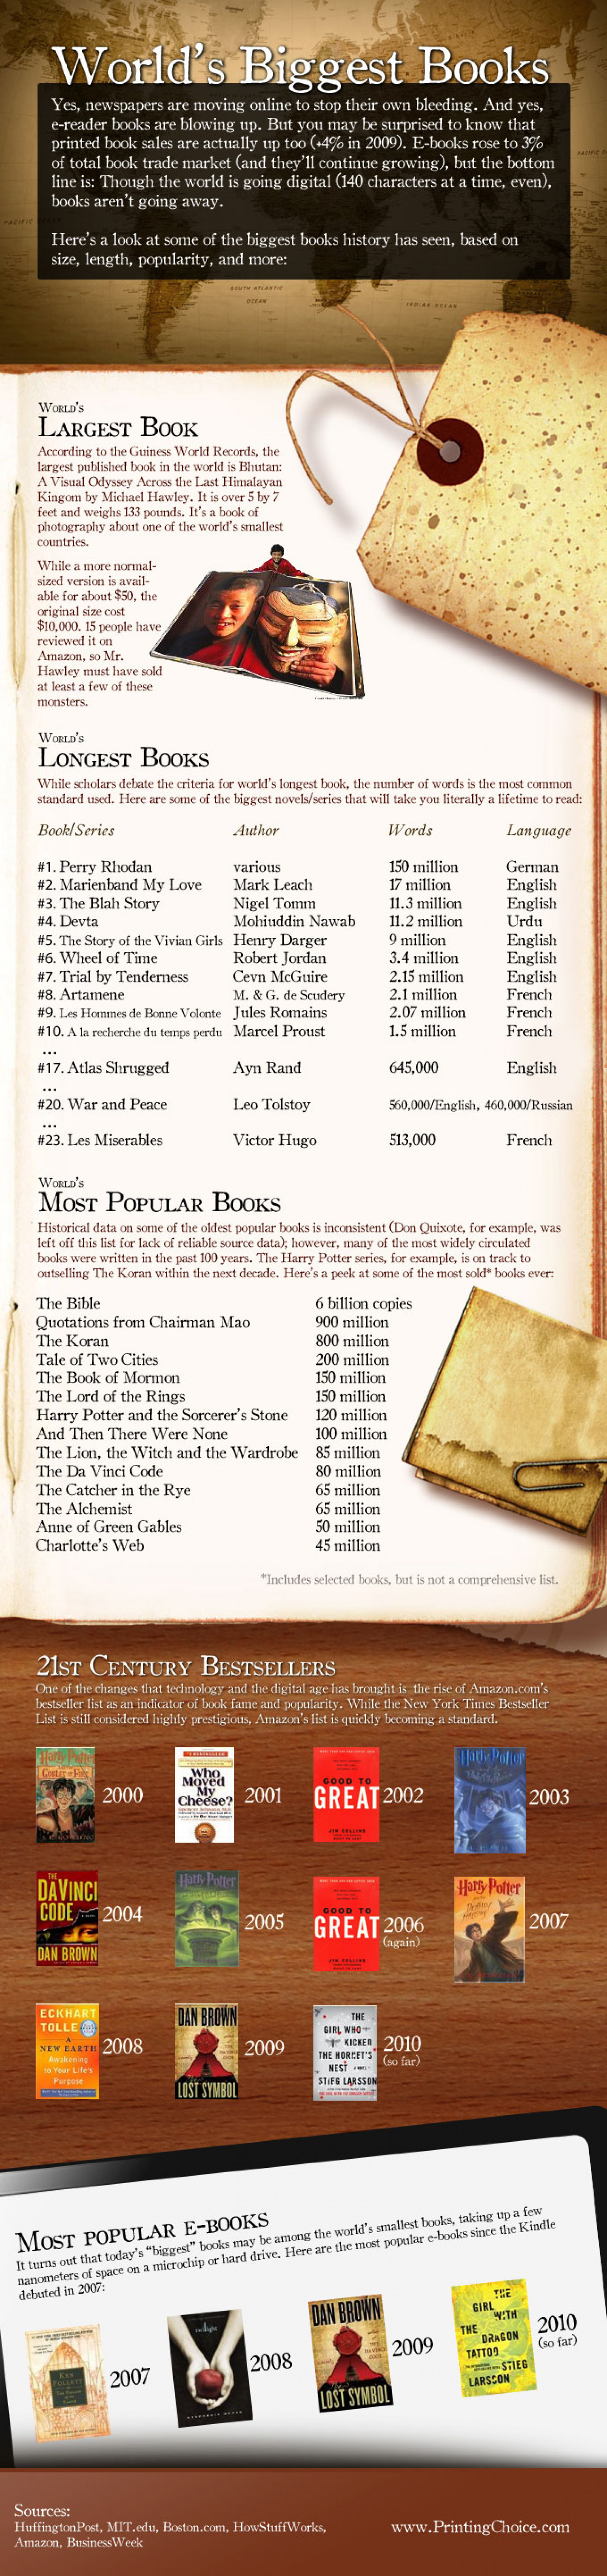 World's Biggest Books Infographic